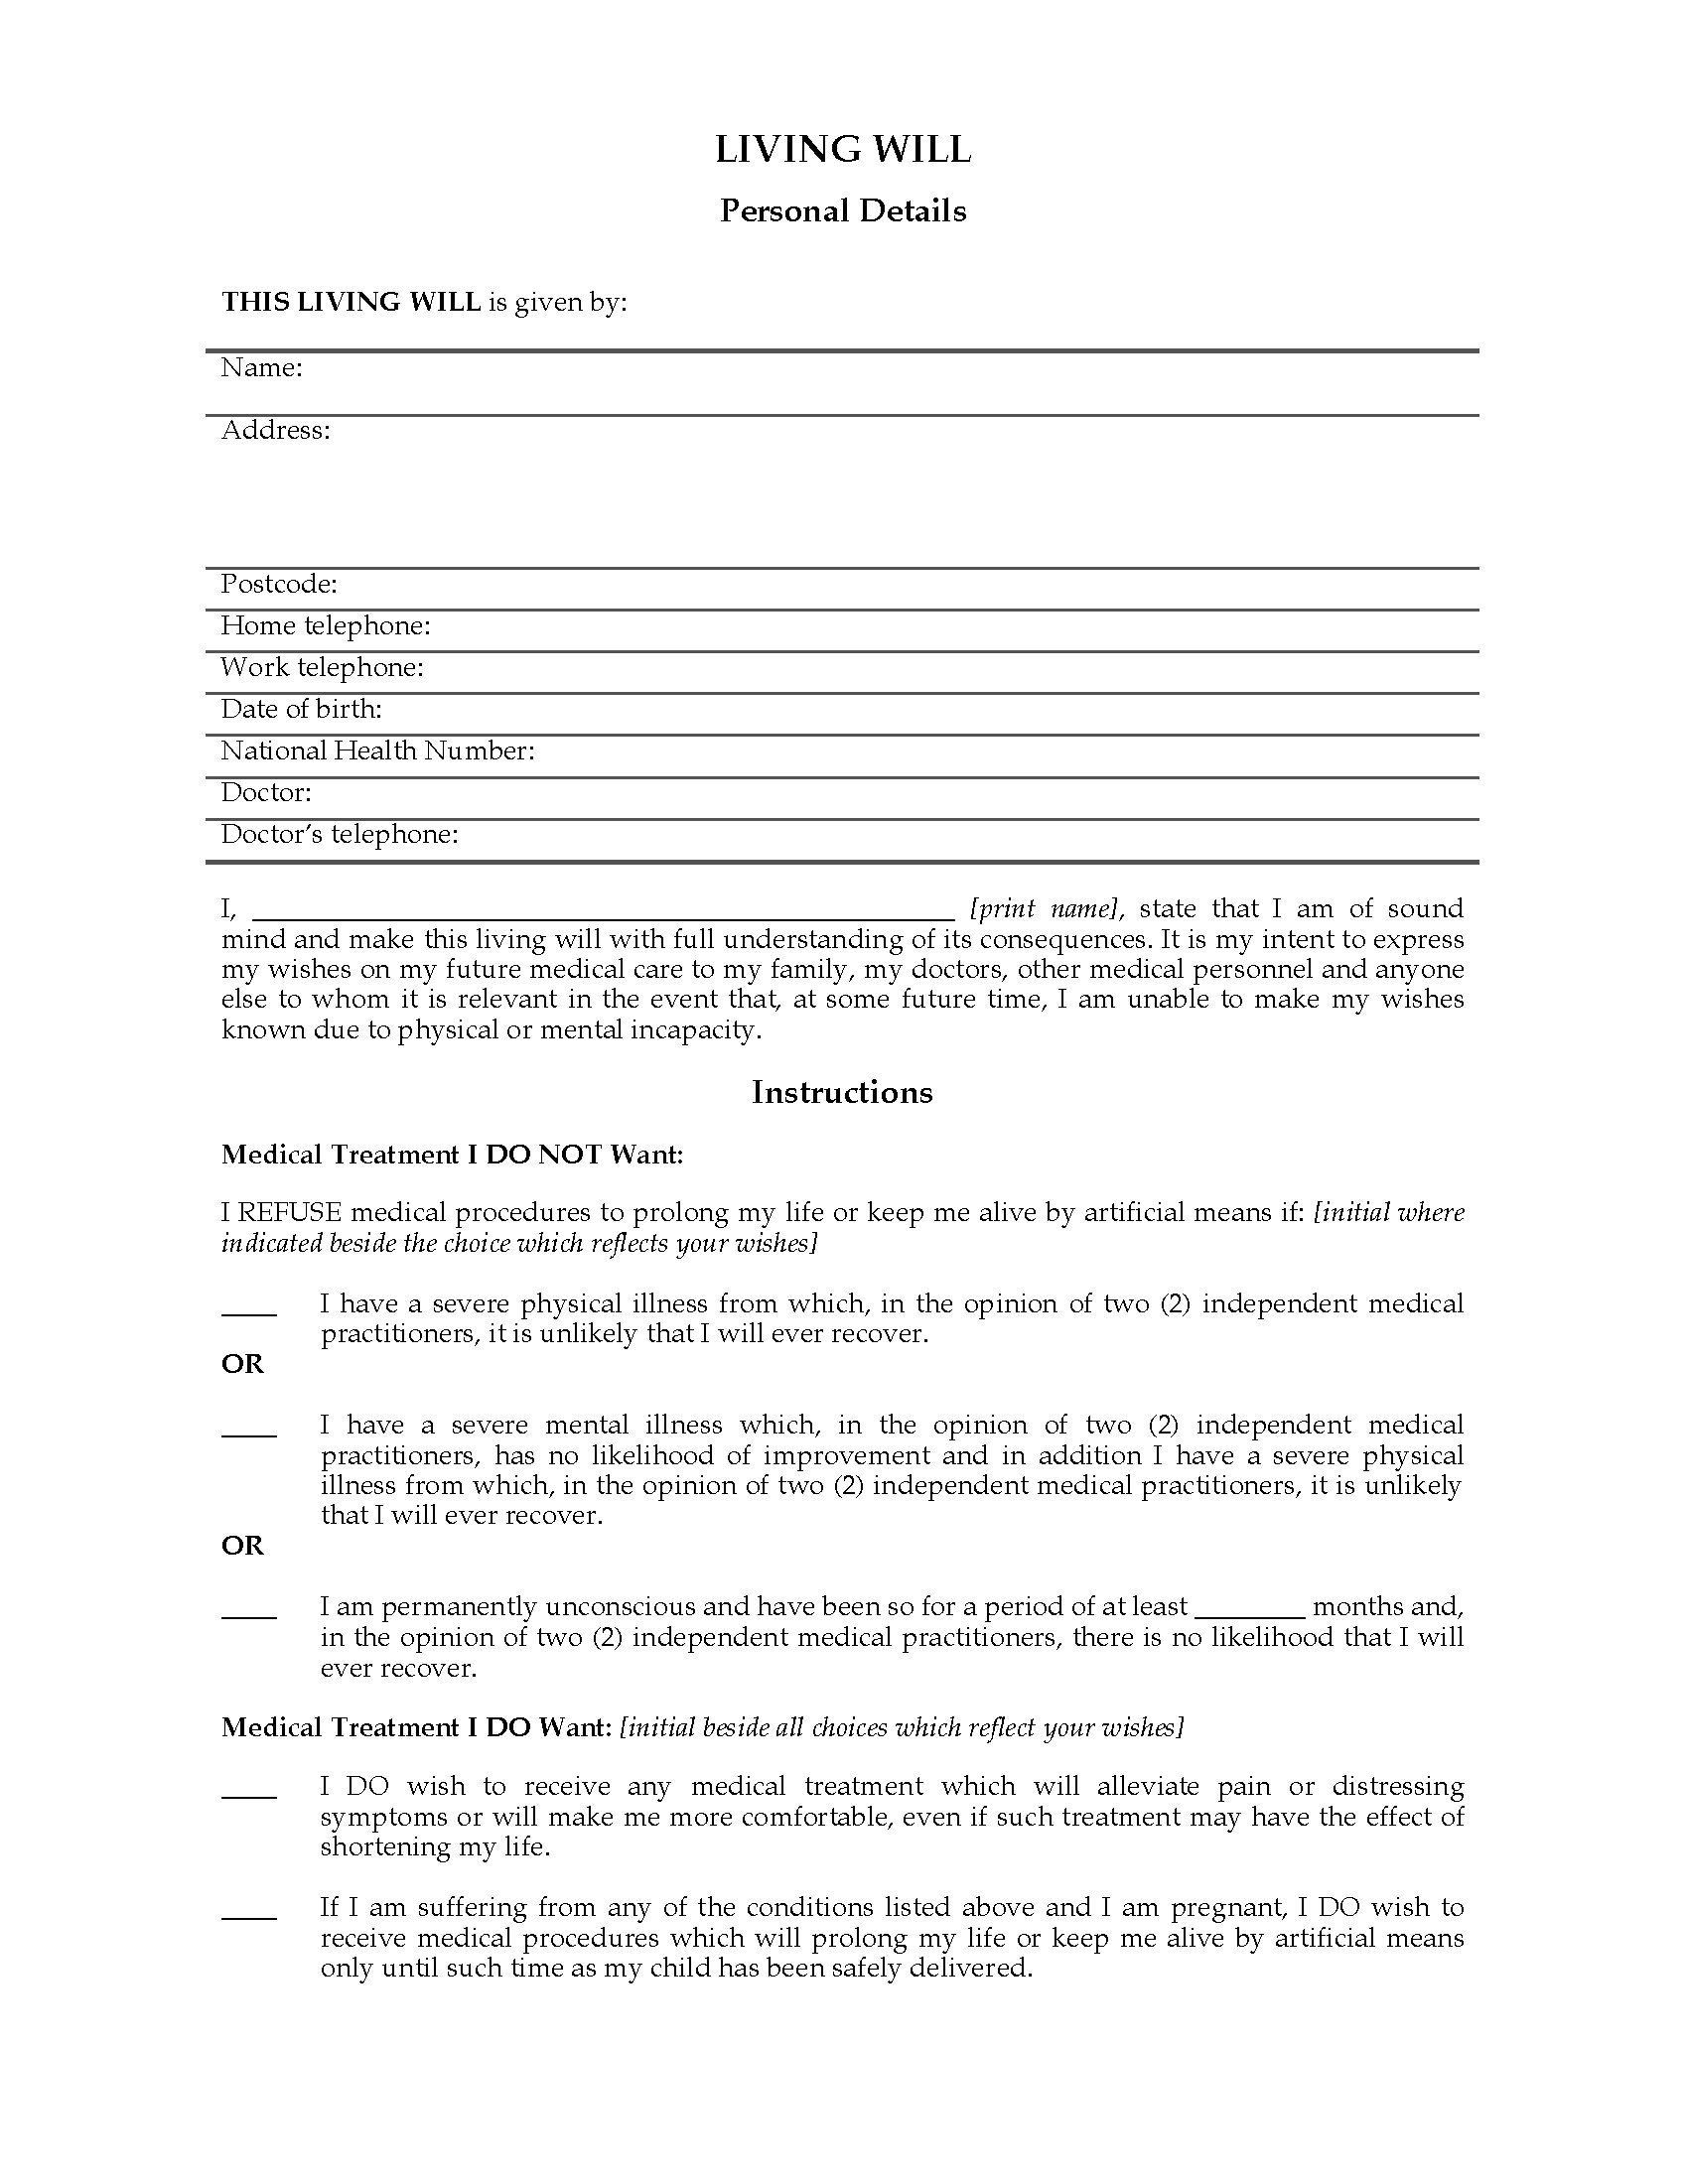 UK Living Will Legal Forms And Business Templates